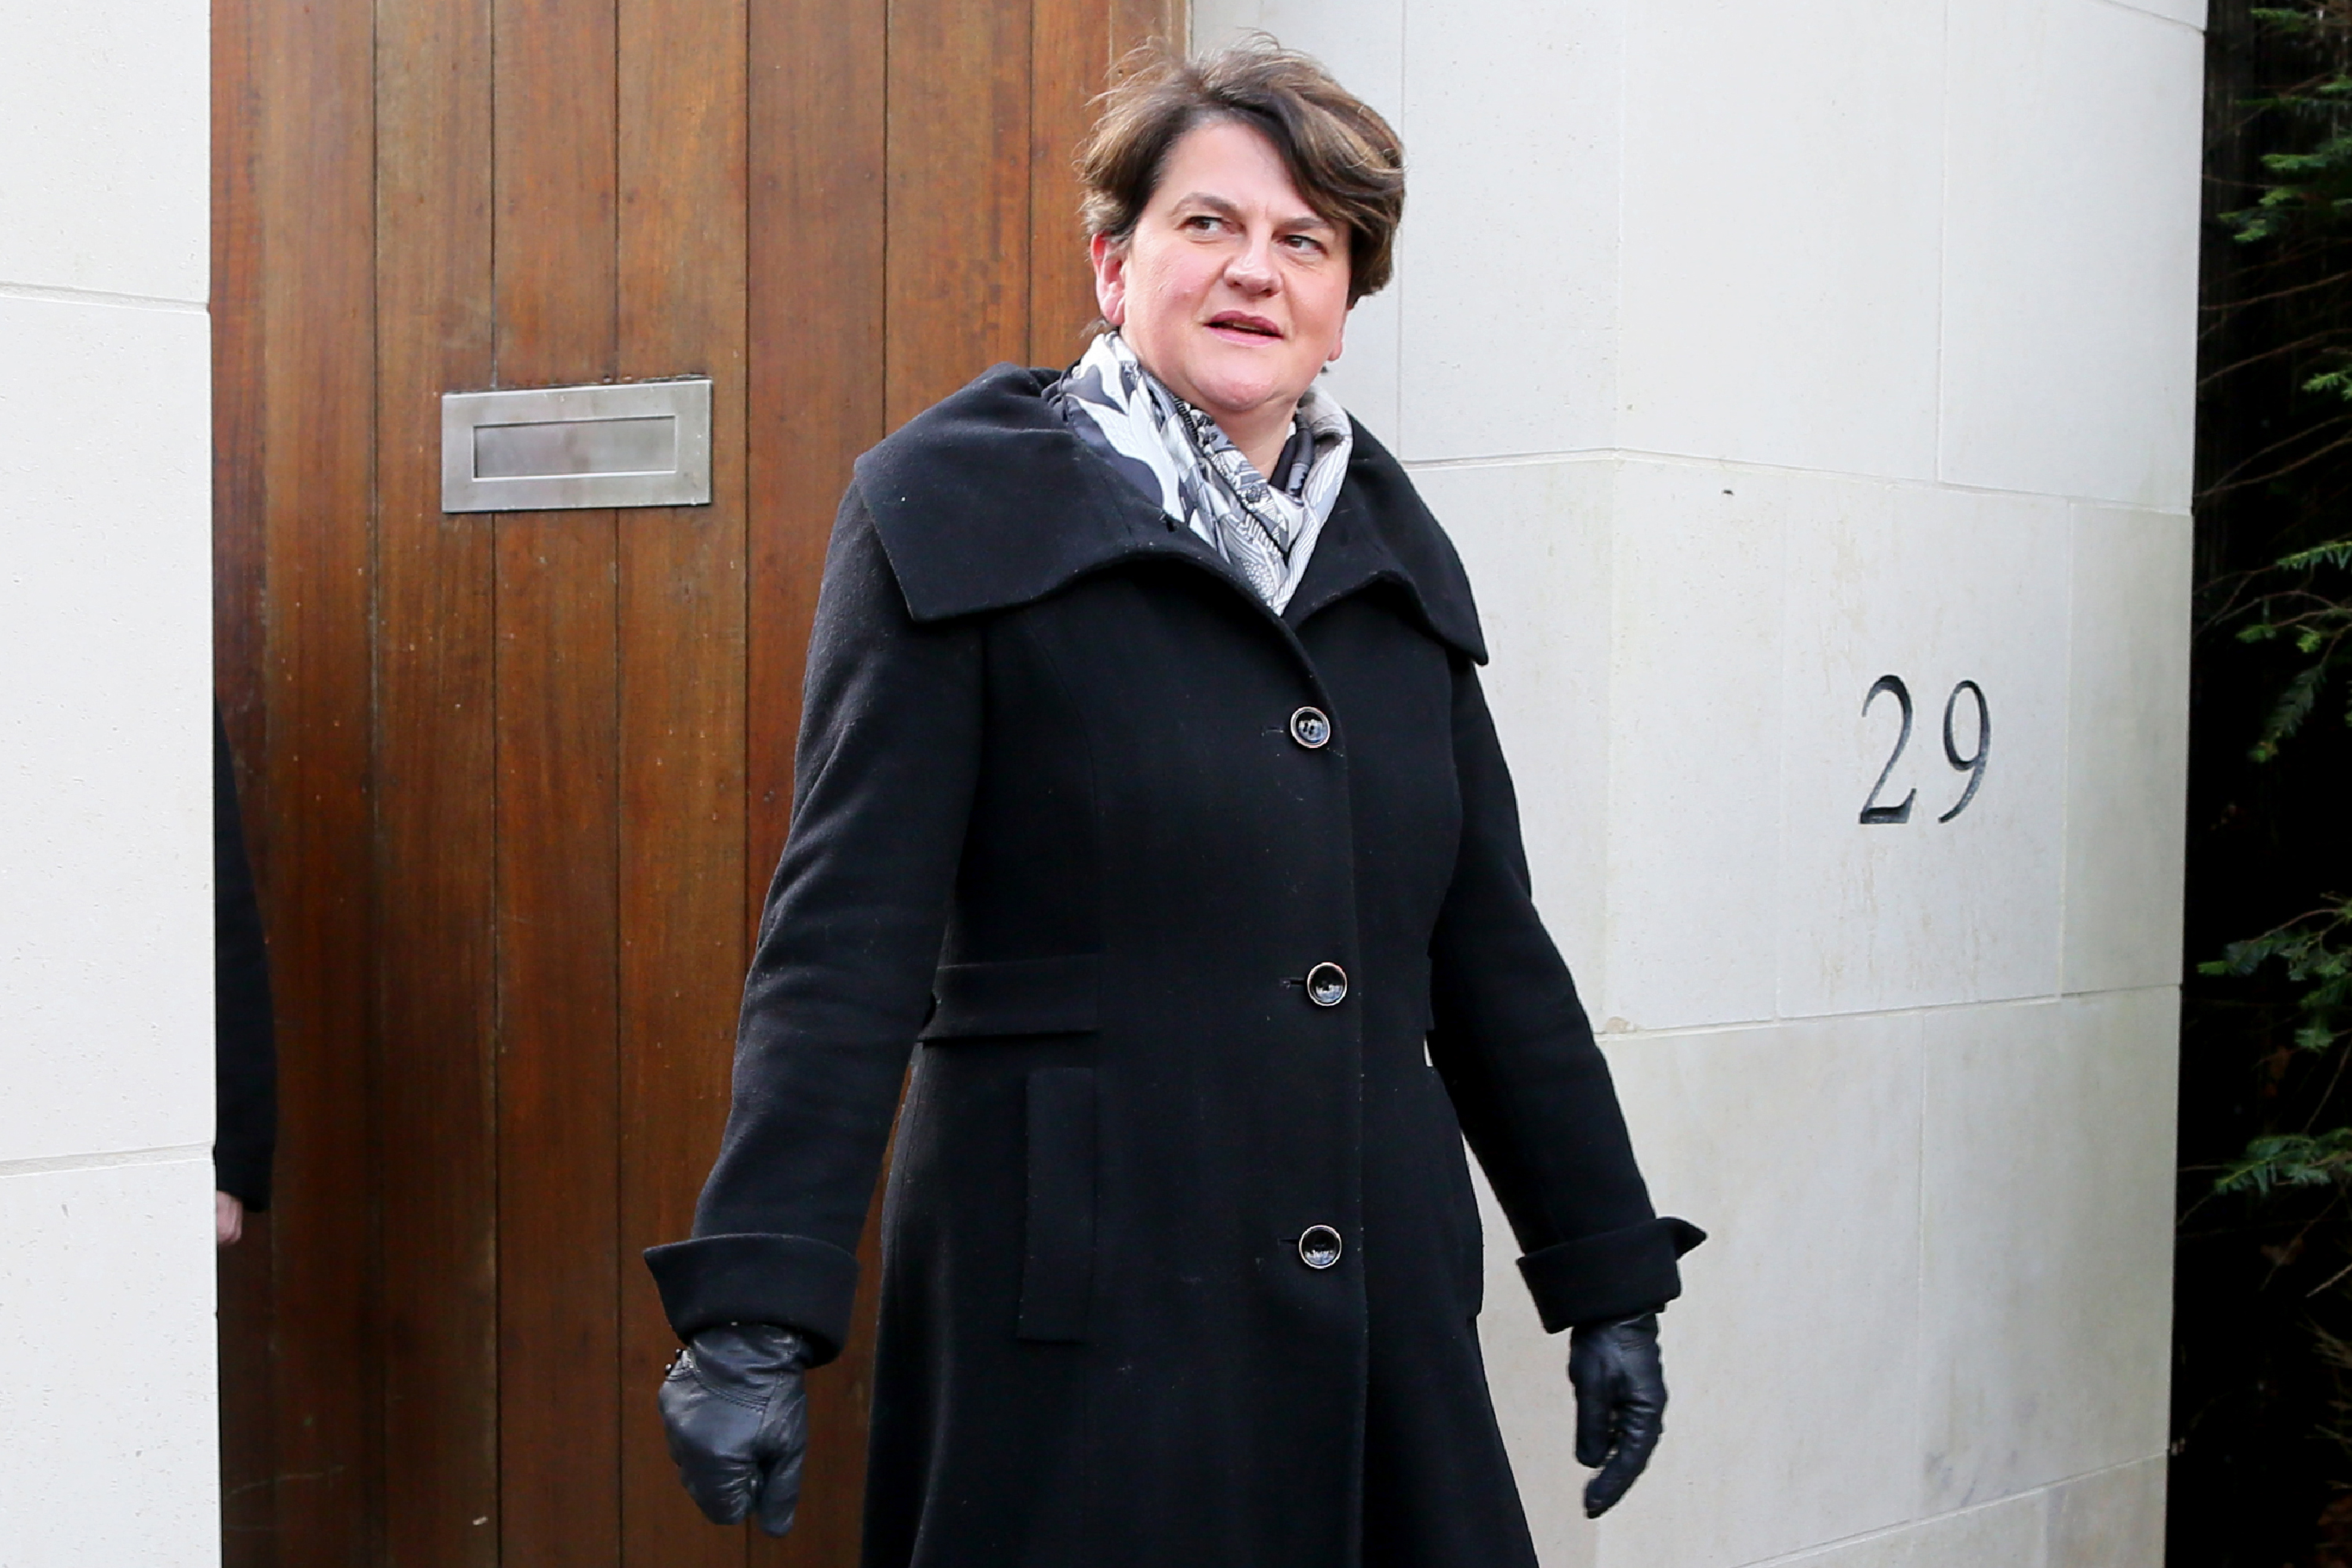 Democratic Unionist Party leader Arlene Foster on February 8.